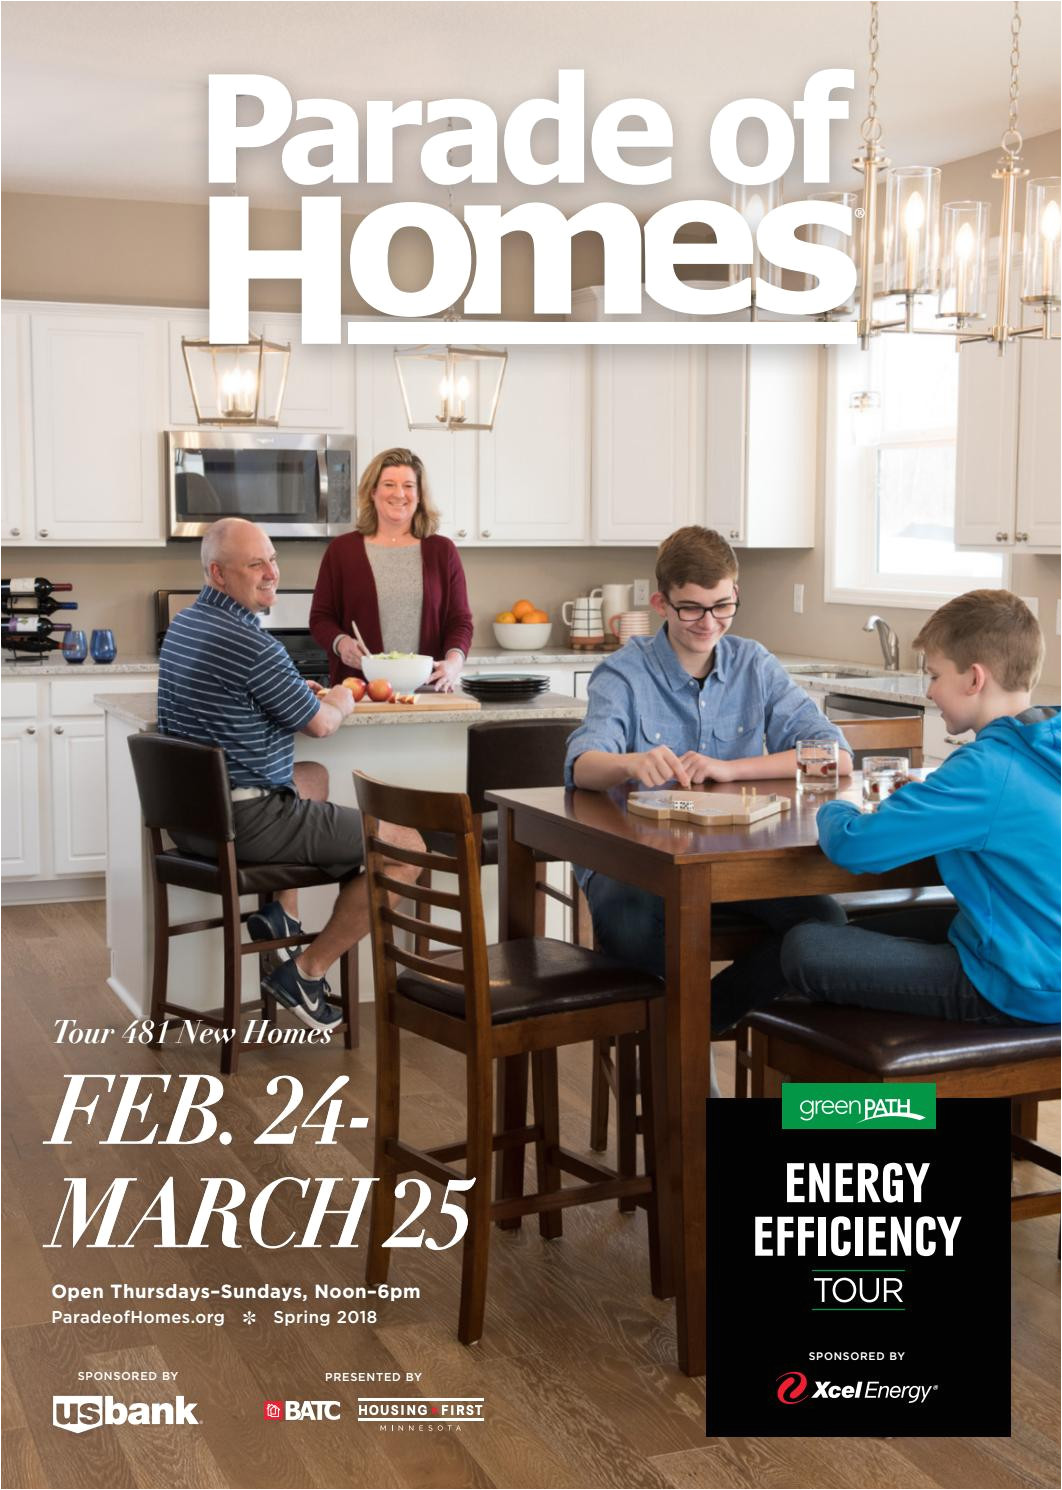 Unfinished Furniture Rochester Ny Ridge Road 2018 Spring Parade Of Homes Sm Guidebook by Batc Housing First